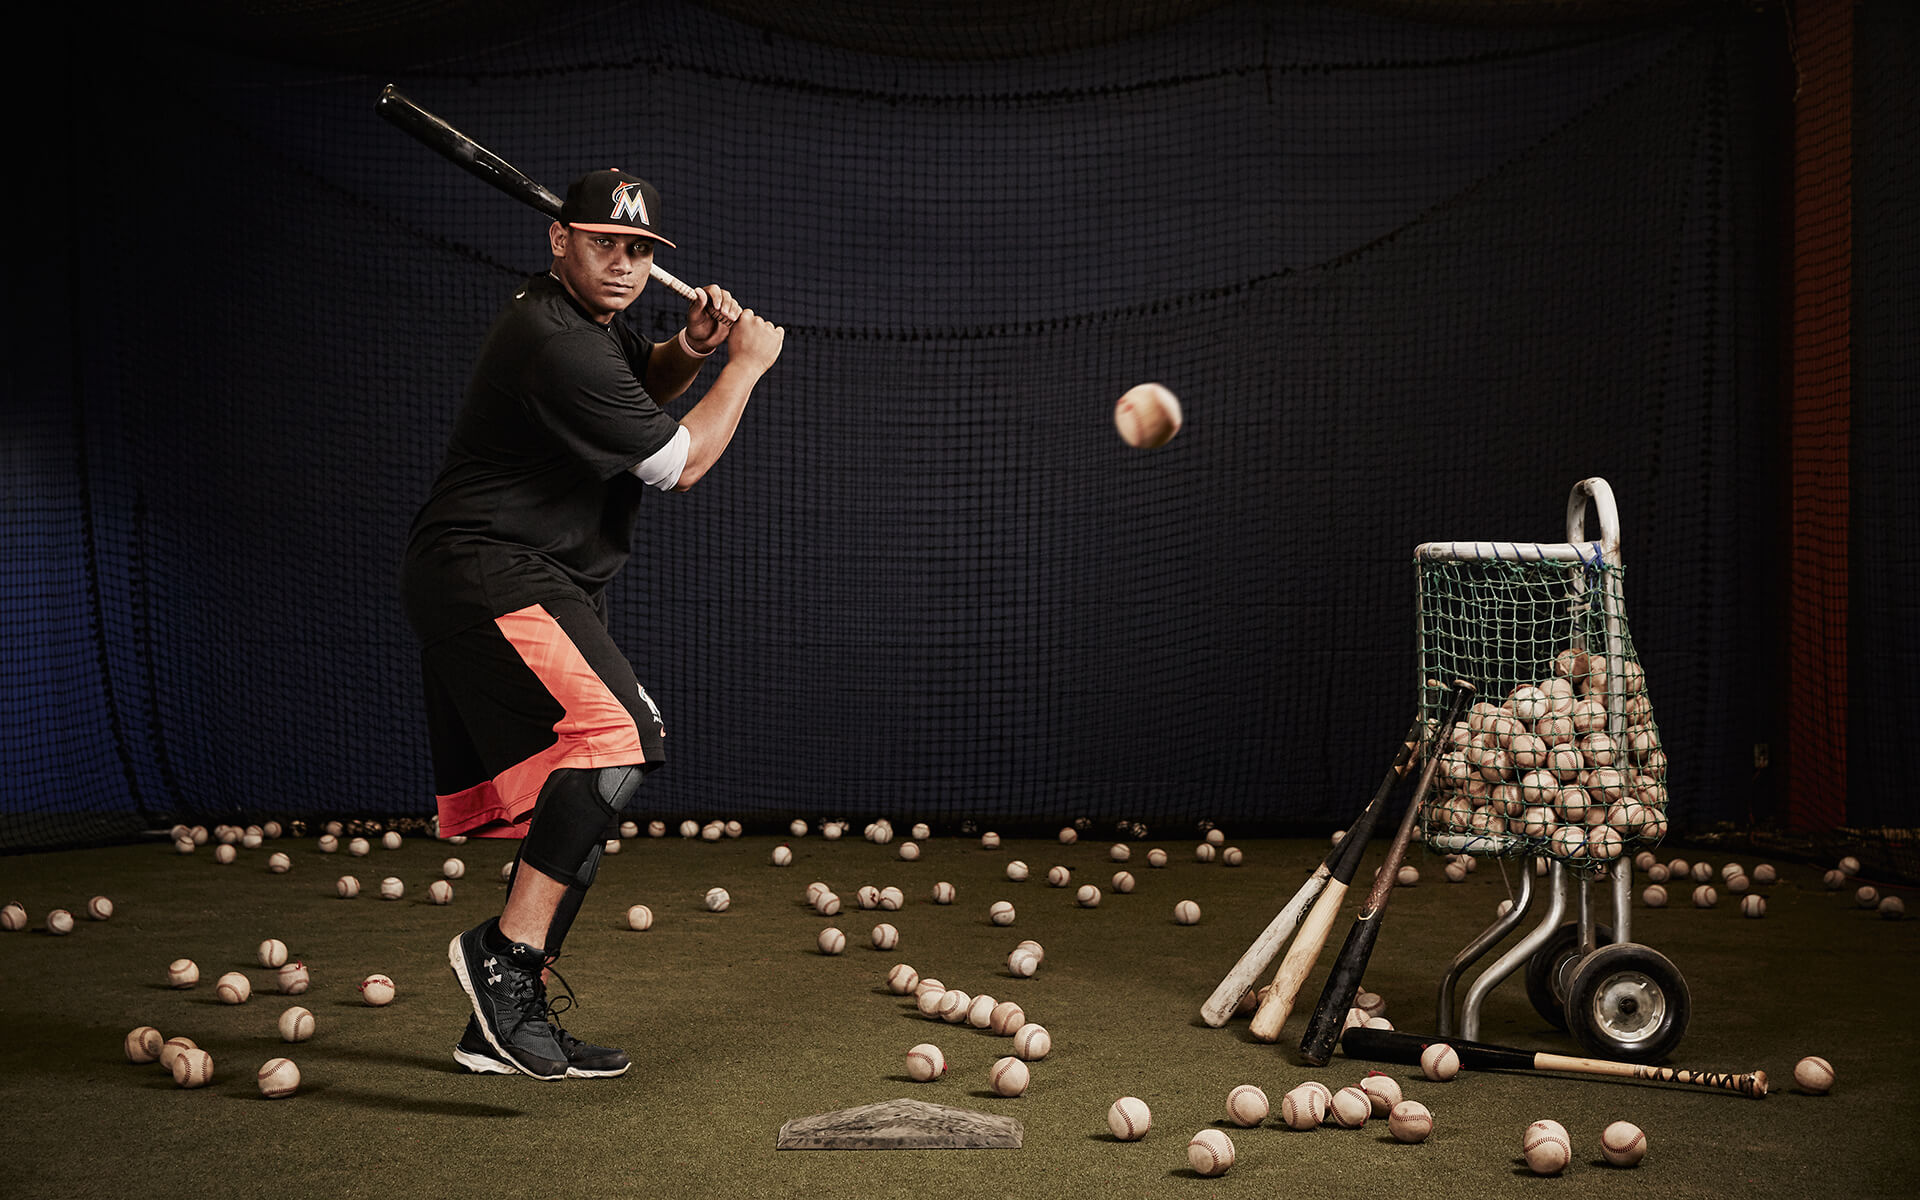 Unified Content, Unified Content Toronto, Aaron Cobb, Sportsnet, Josh Naylor, Athlete, Marlins, Marlins baseball, New Recruit, Athlete, Sports Photography, Baseball, Baseball player, MLB, Major League Baseball, action shot, action, sports photography